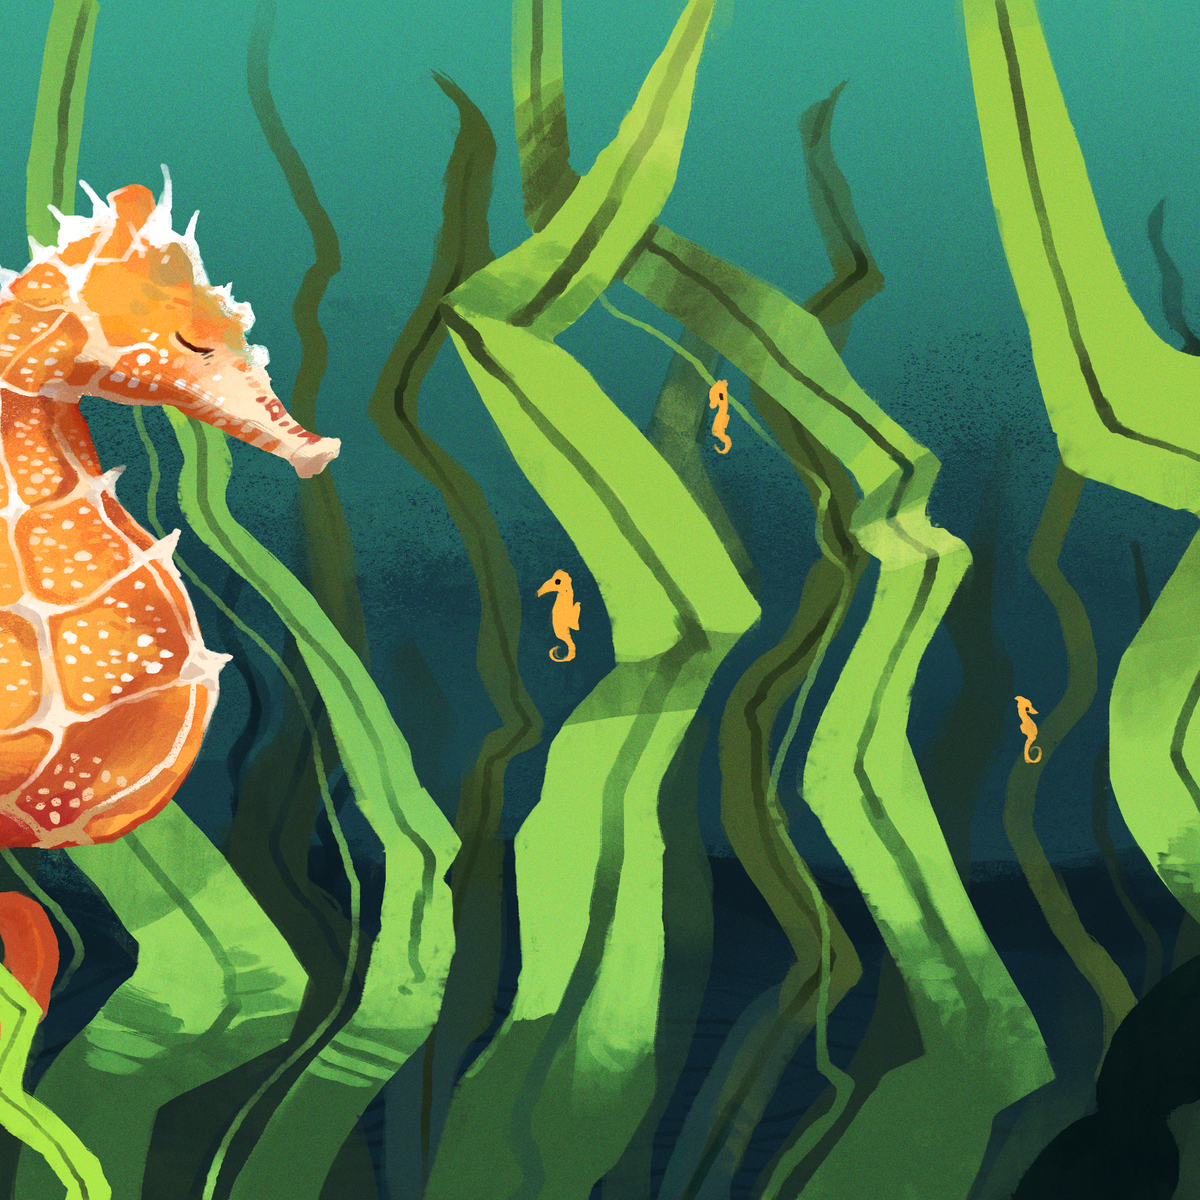 Curious Kids: Is it true that male seahorses give birth?